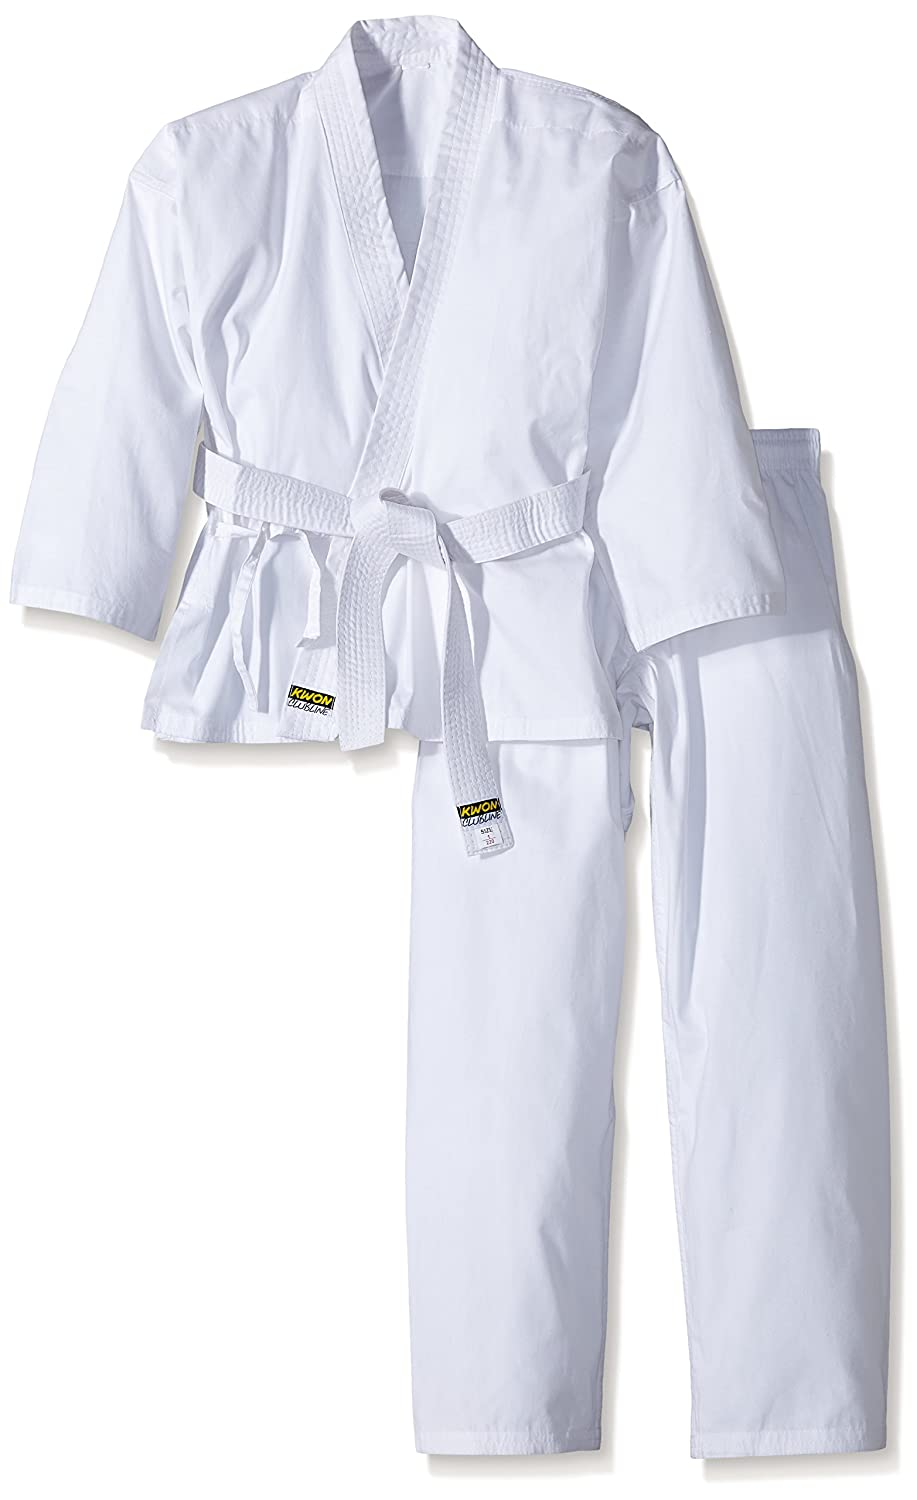 KWON Renshu Children's Karate Suit